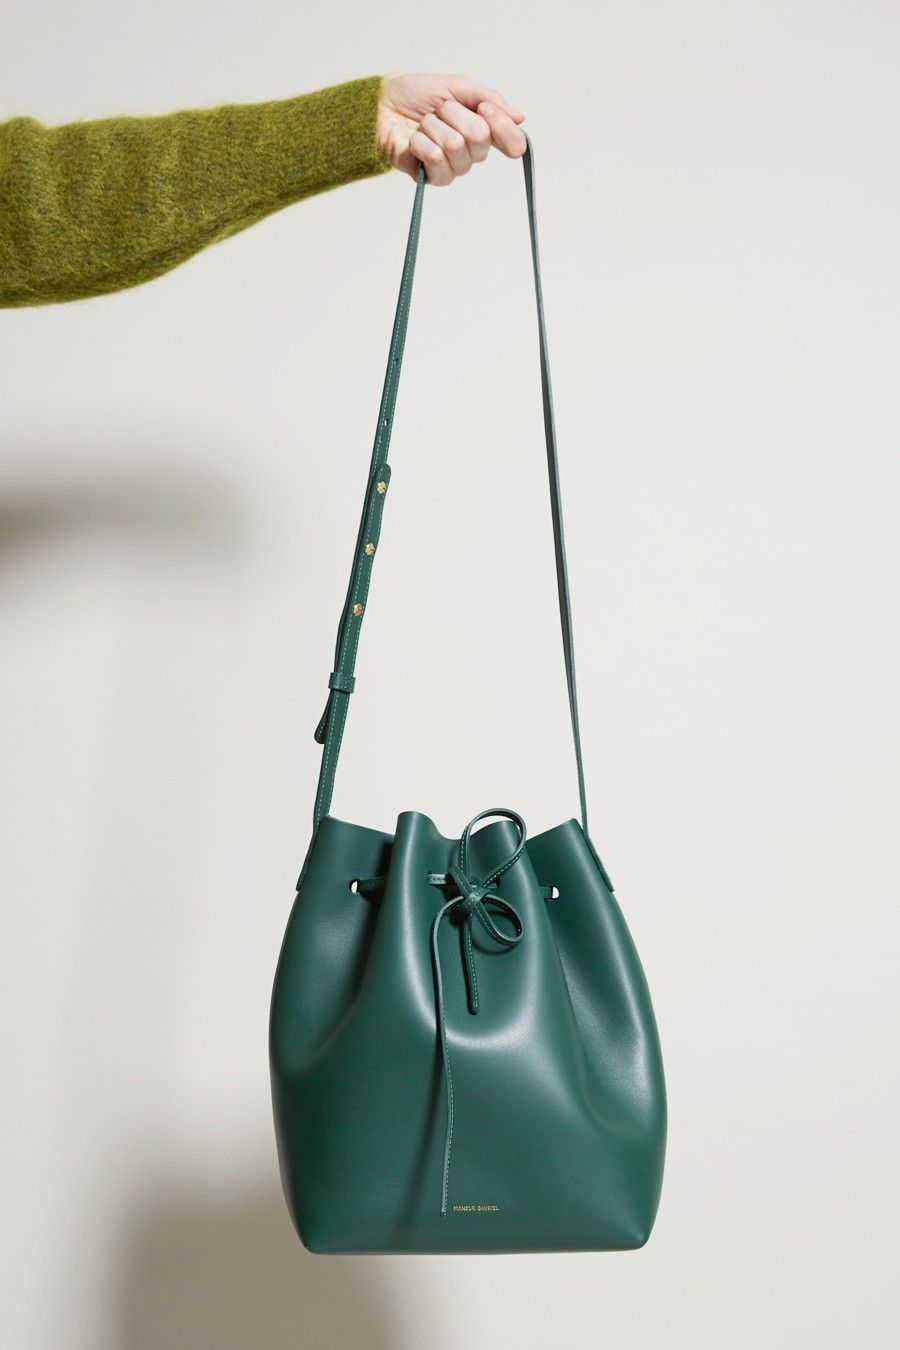 4011761c692 My everyday go-to Bag - Mansur Gavriel Bucket Bag, Moss Calf Leather ...